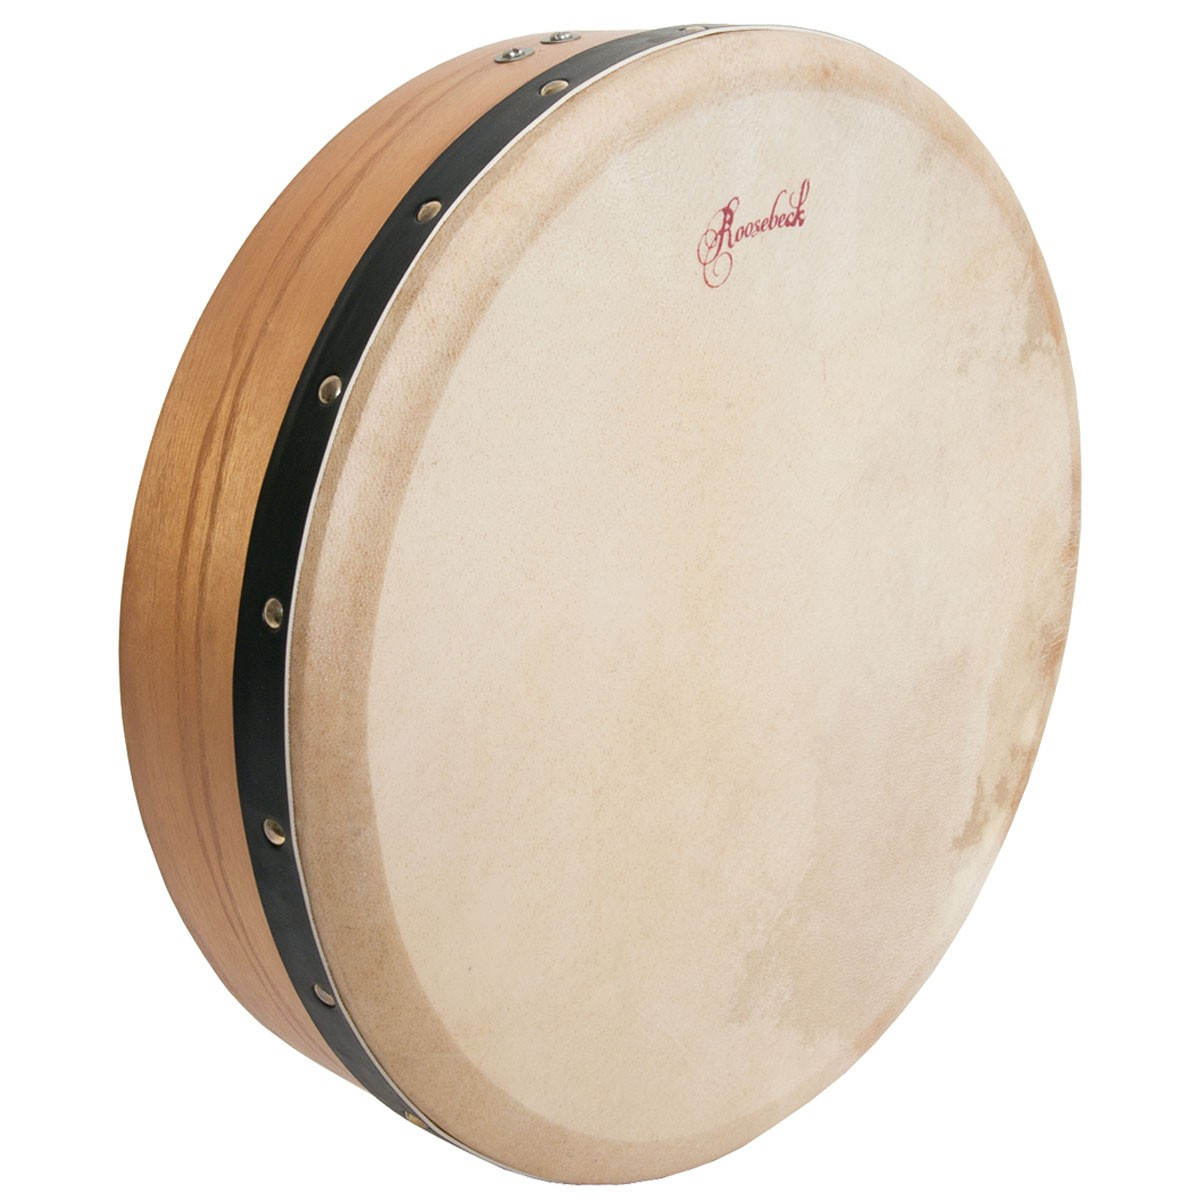 Roosebeck Pretuned Mulberry Bodhran Single-Bar 14' x 3.5'